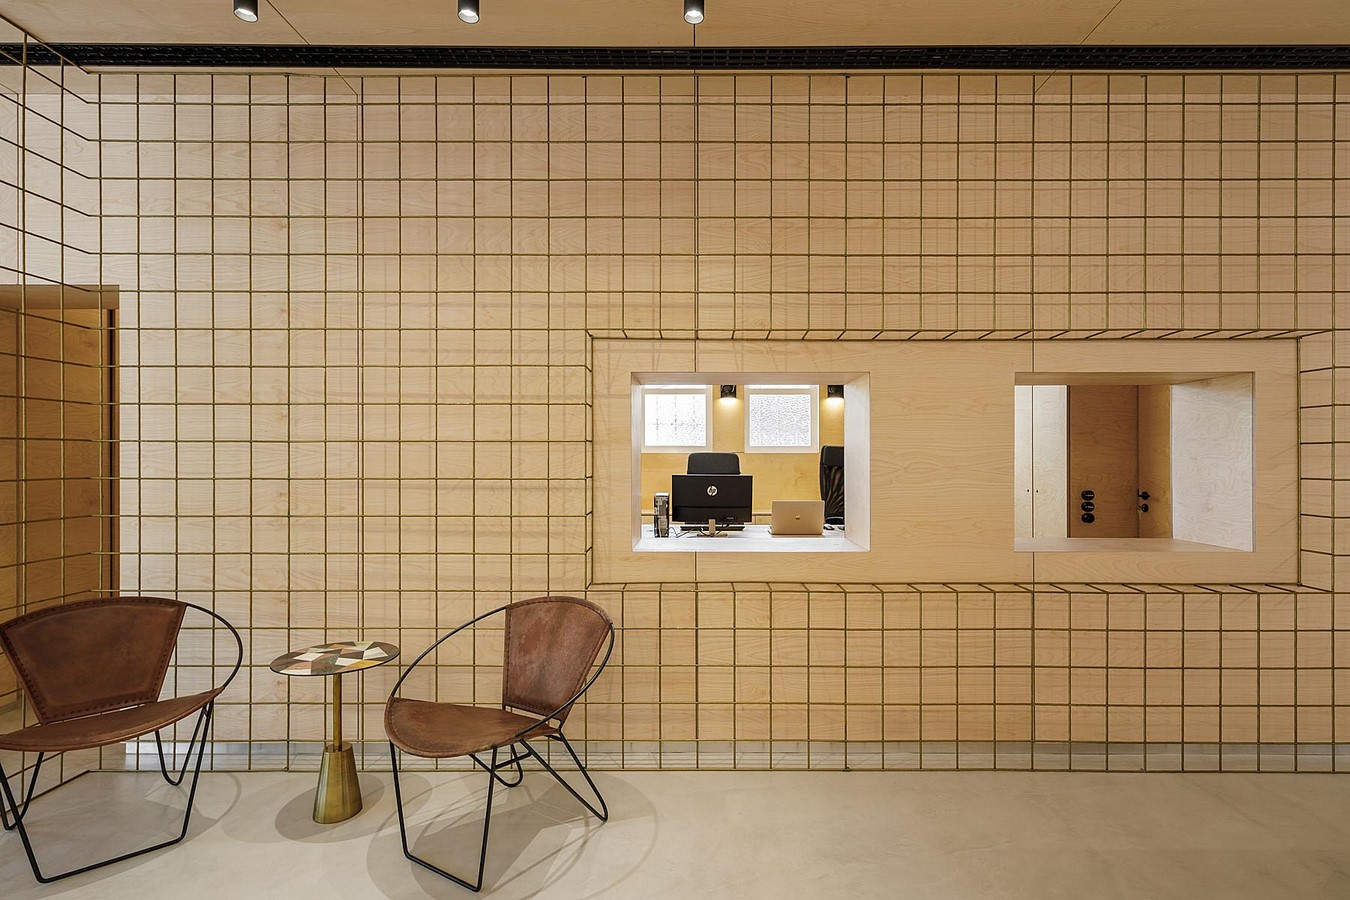 Interior Space divided with Golden Wire Meshes For Multiple Uses In This Store In Portugal by Stu.Dere- Sheet3